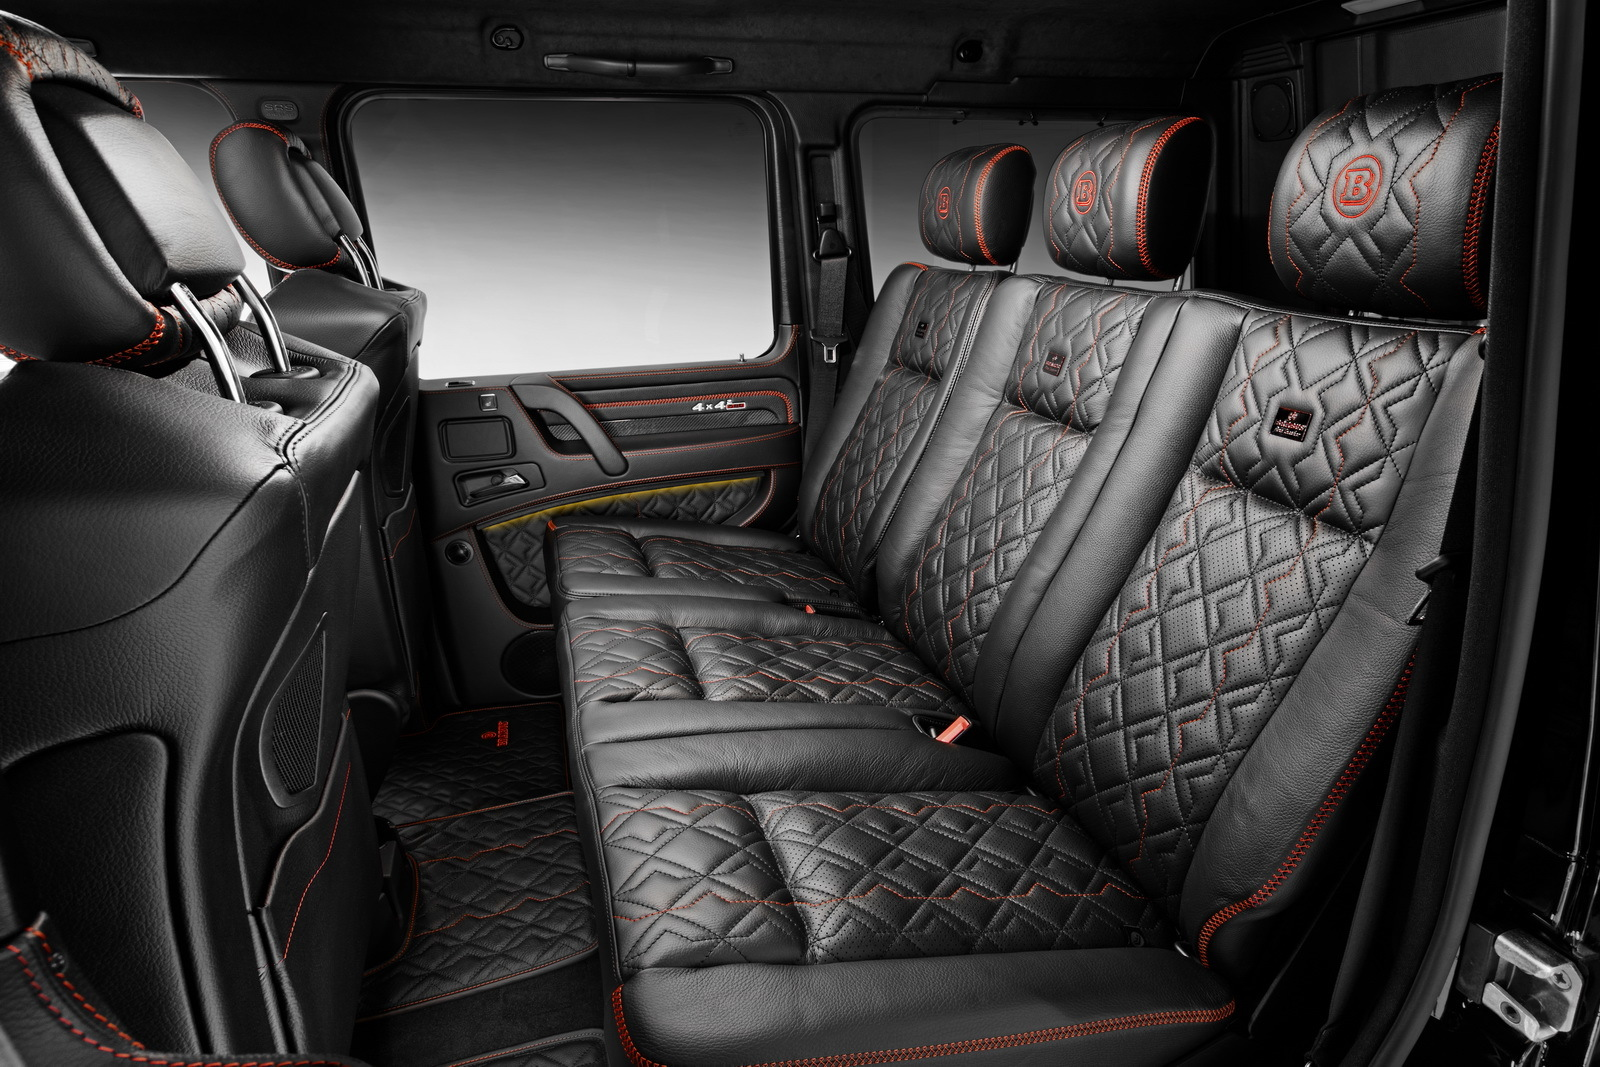 ' ' from the web at 'http://www.blogcdn.com/slideshows/images/slides/362/040/0/S3620400/slug/l/brabus-mercedes-benz-g-500-4-x-4-010-1.jpg'